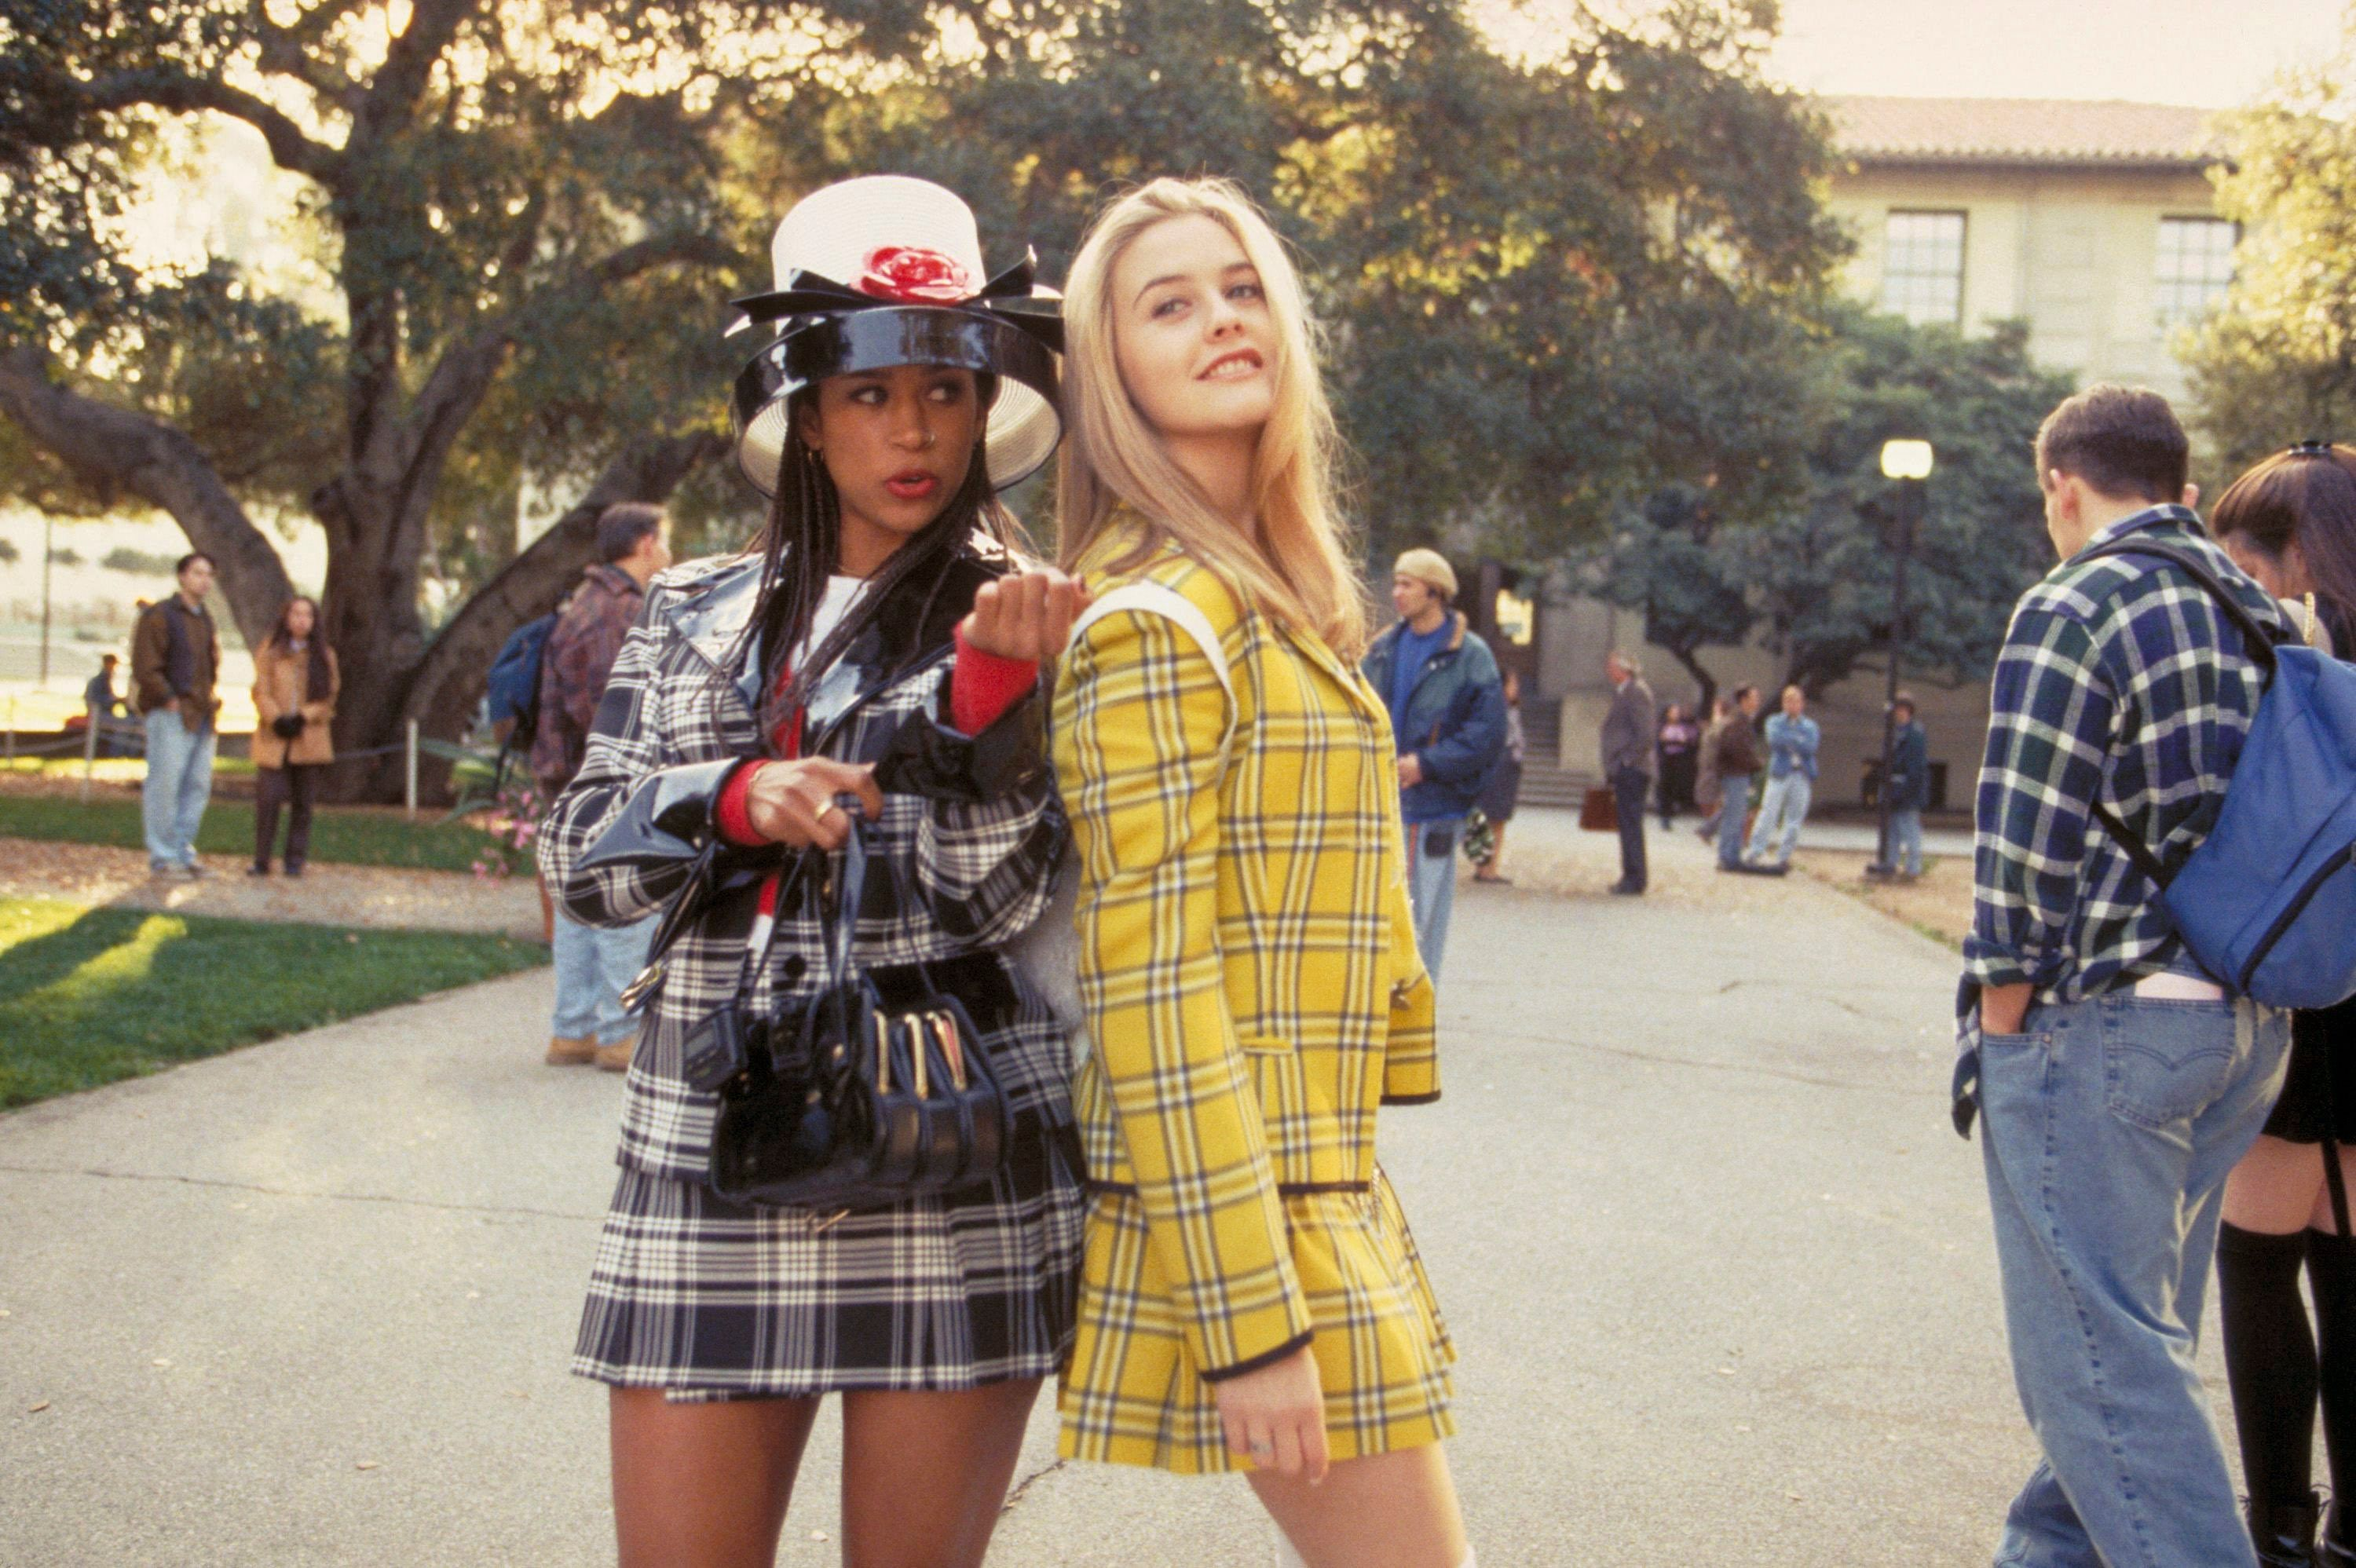 Unforgettable Throwback Films With The Best Style - Fame10